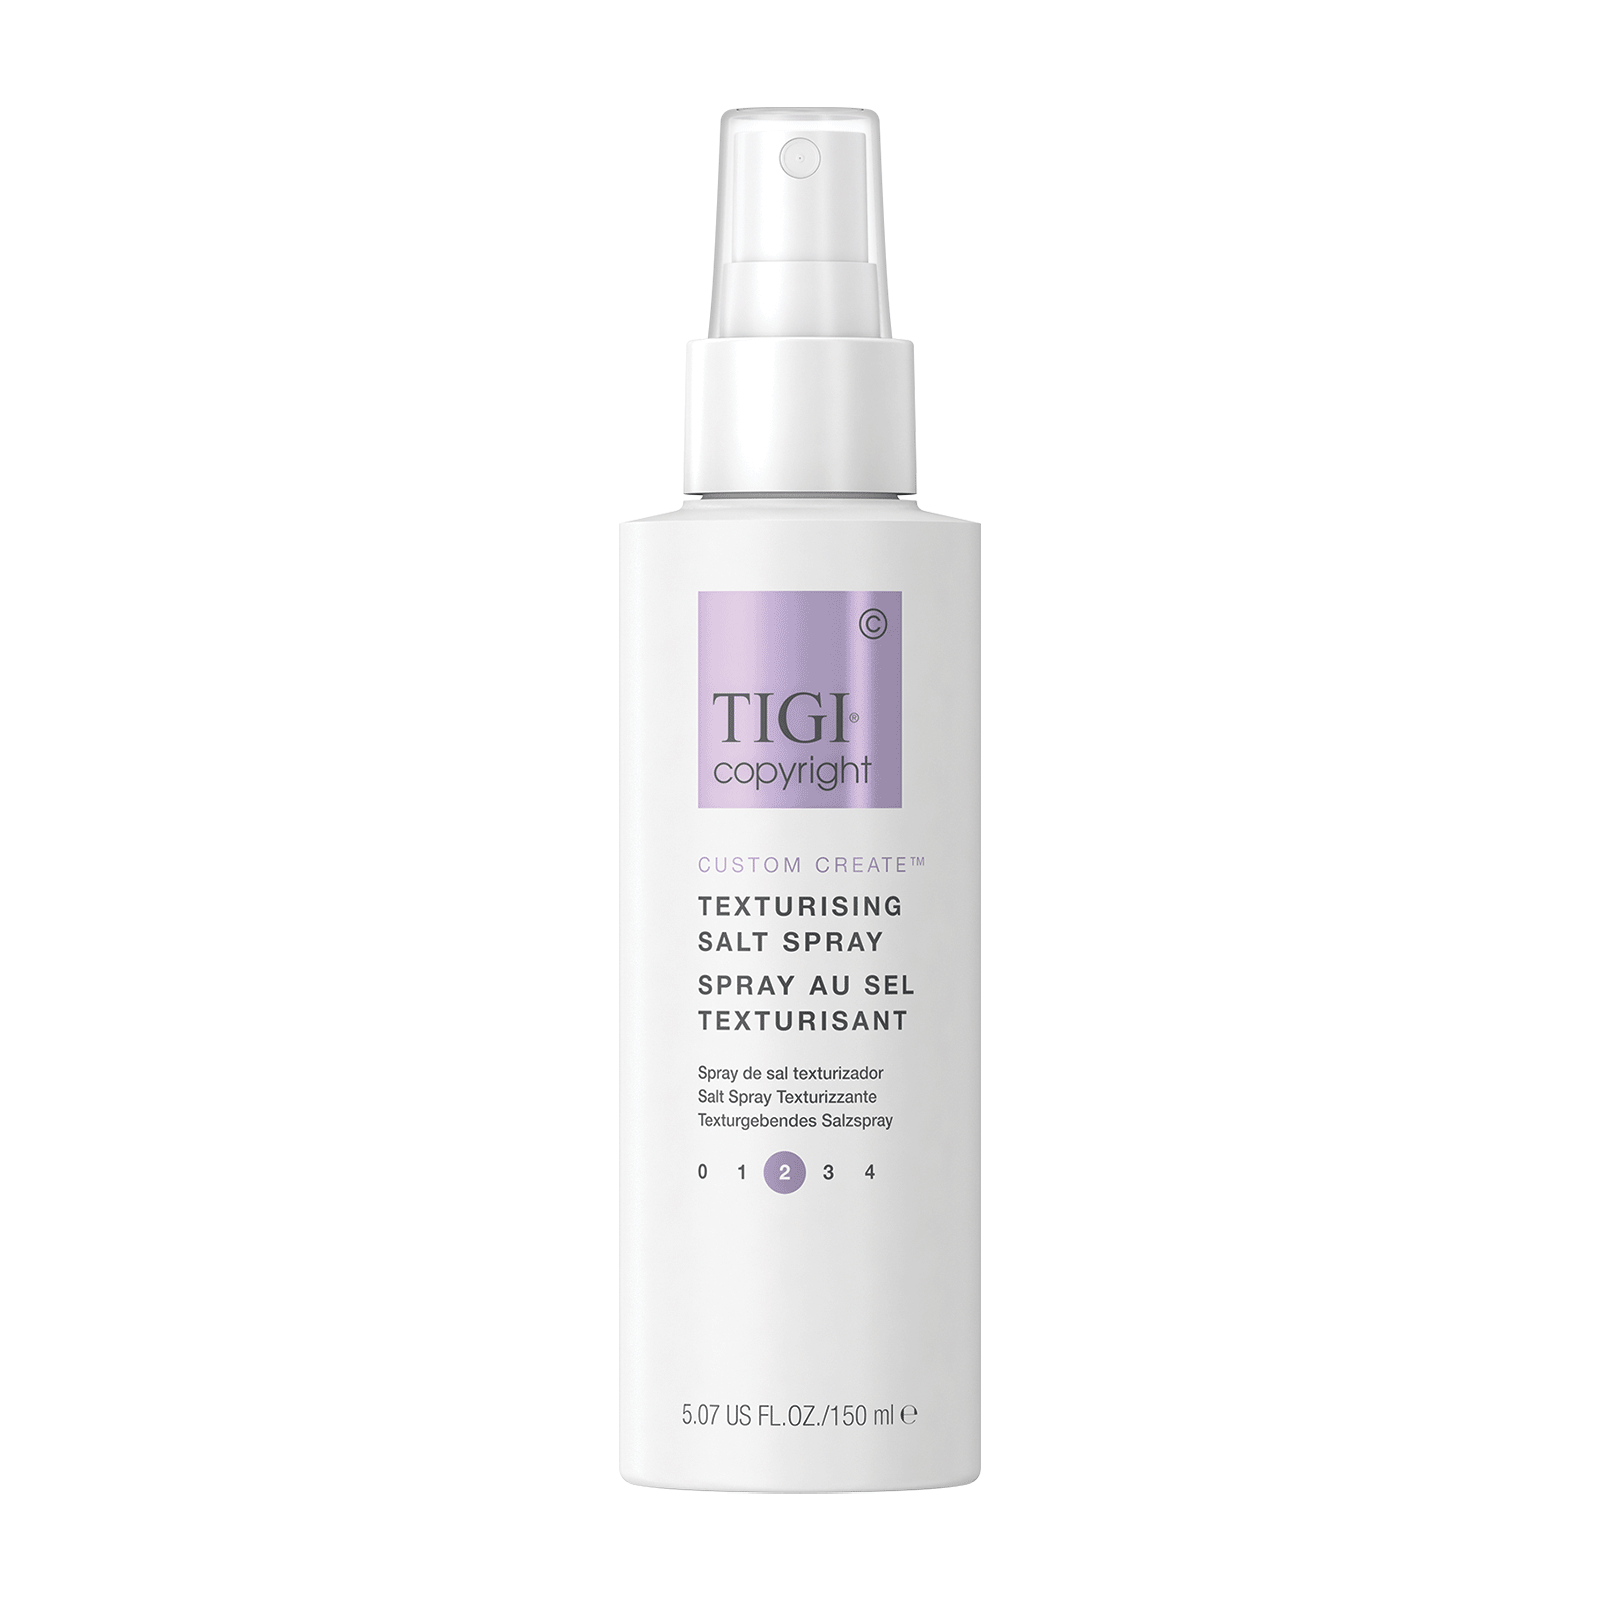 Copyright Texturizing Salt Spray